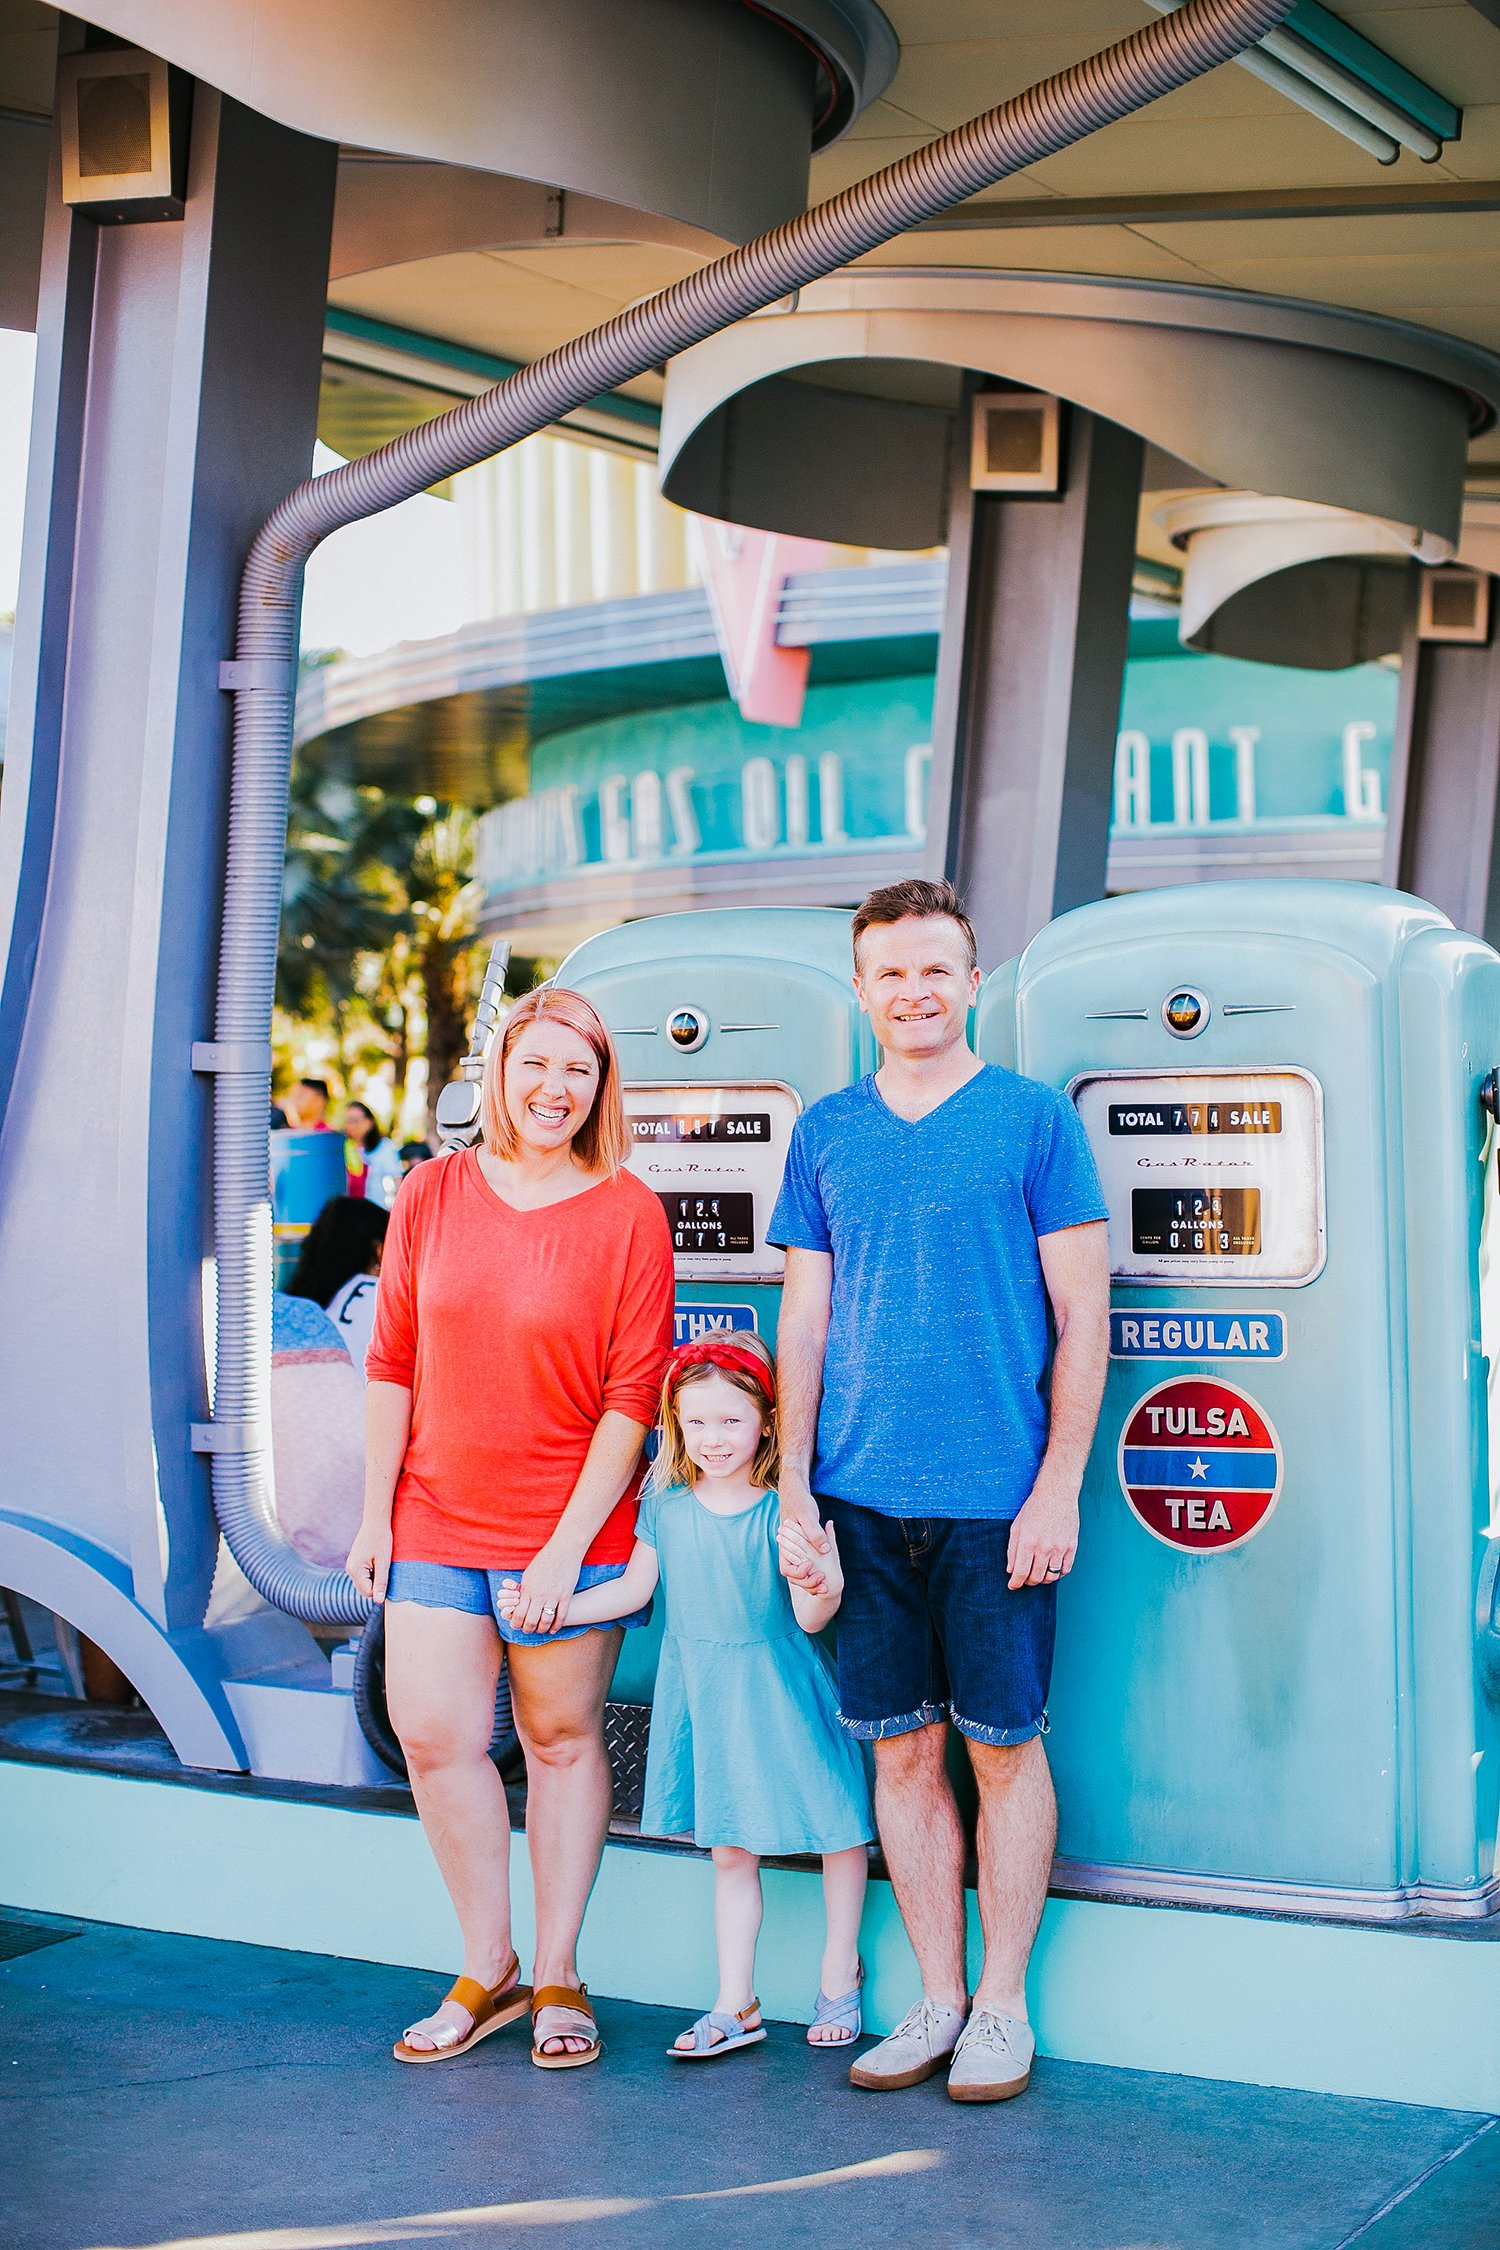 I love these red and blue family photo outfits! Perfect for a Disneyland photo shoot!